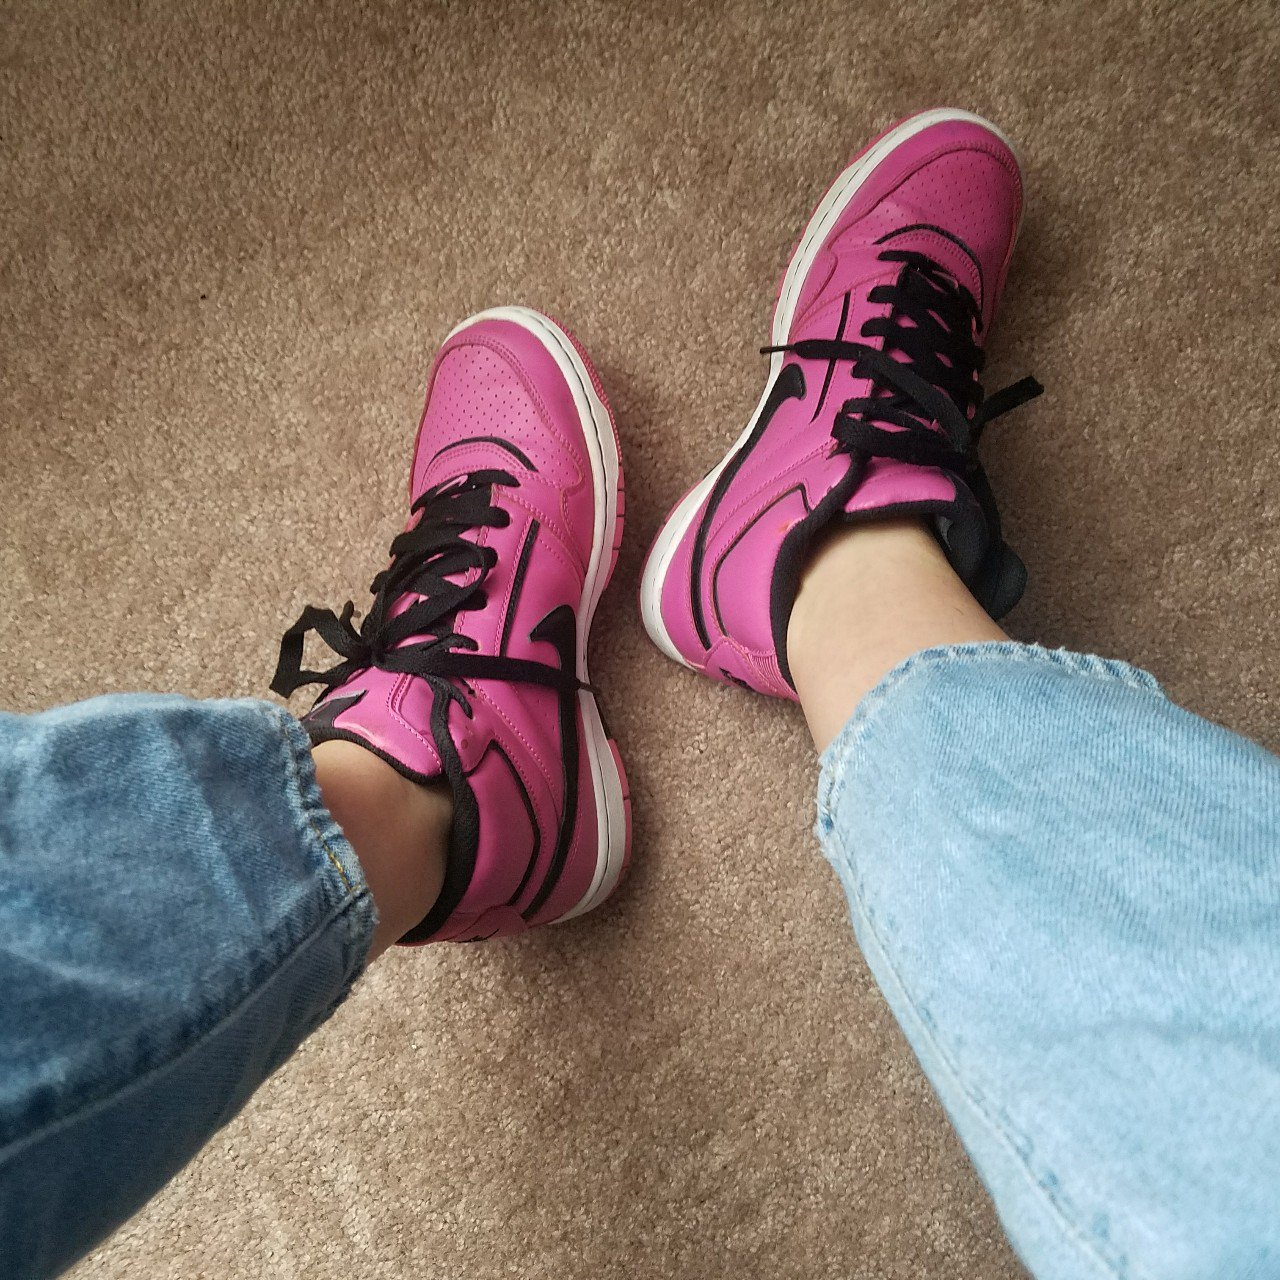 c9d78db128b1e4 Pink and Black Nike Prestige High Tops Thrifted these years - Depop